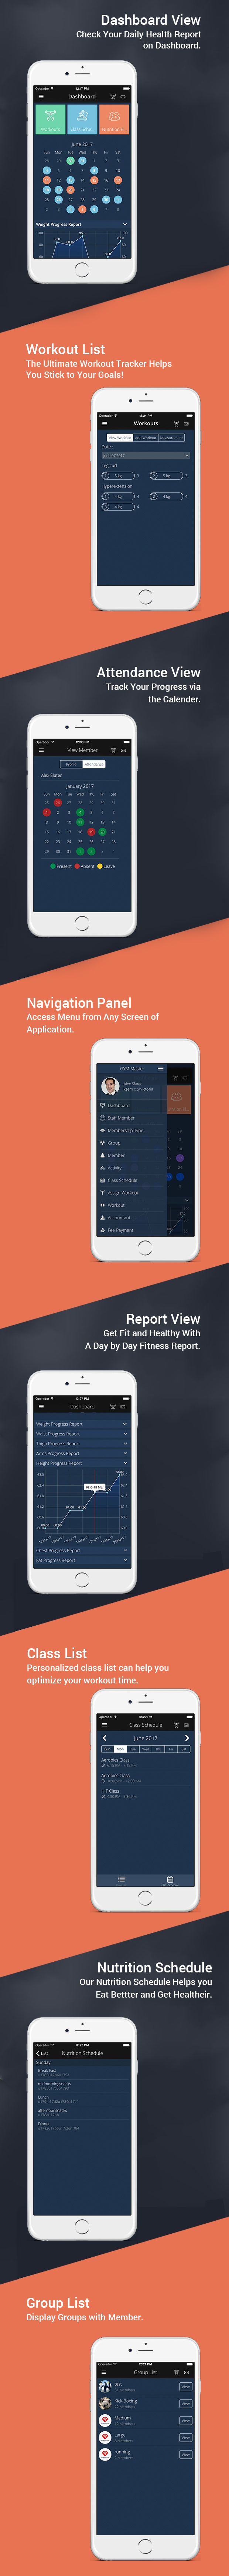 Gym master iphone mobile app